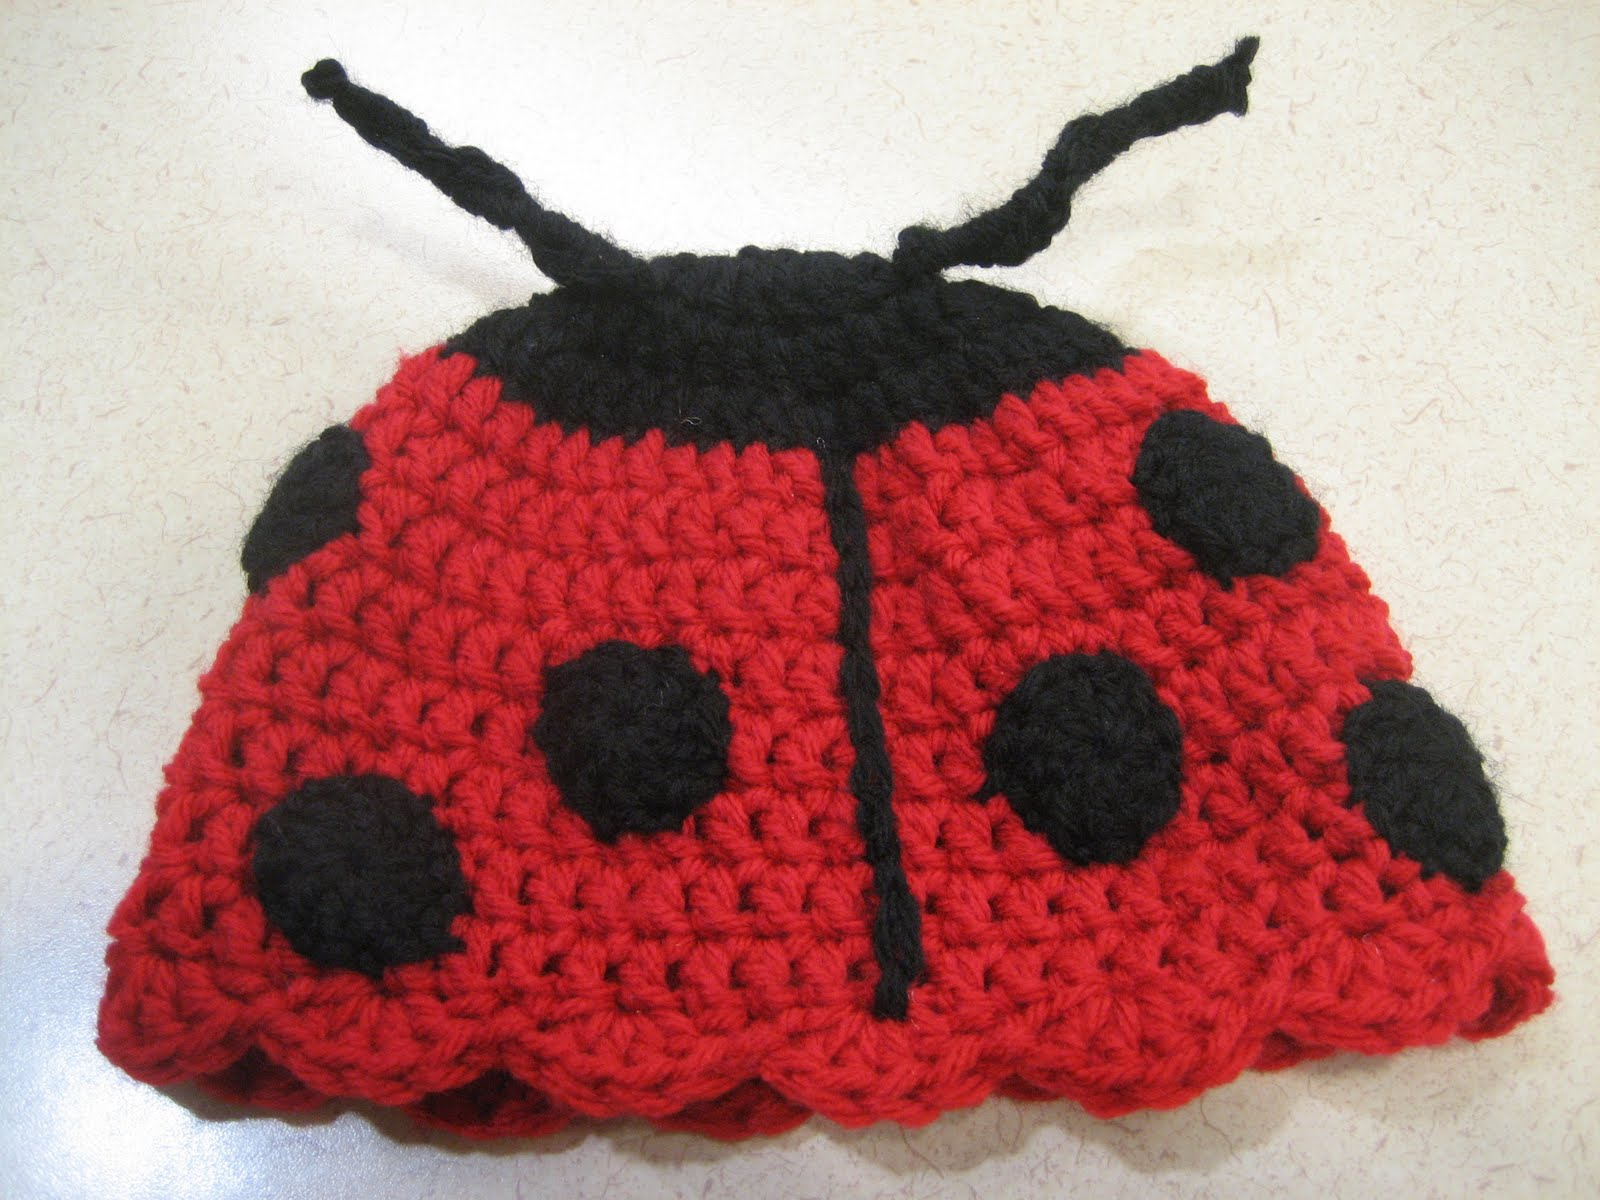 Little Ladybug Pattern | NeedleNoodles: Crochet Patterns, Knit